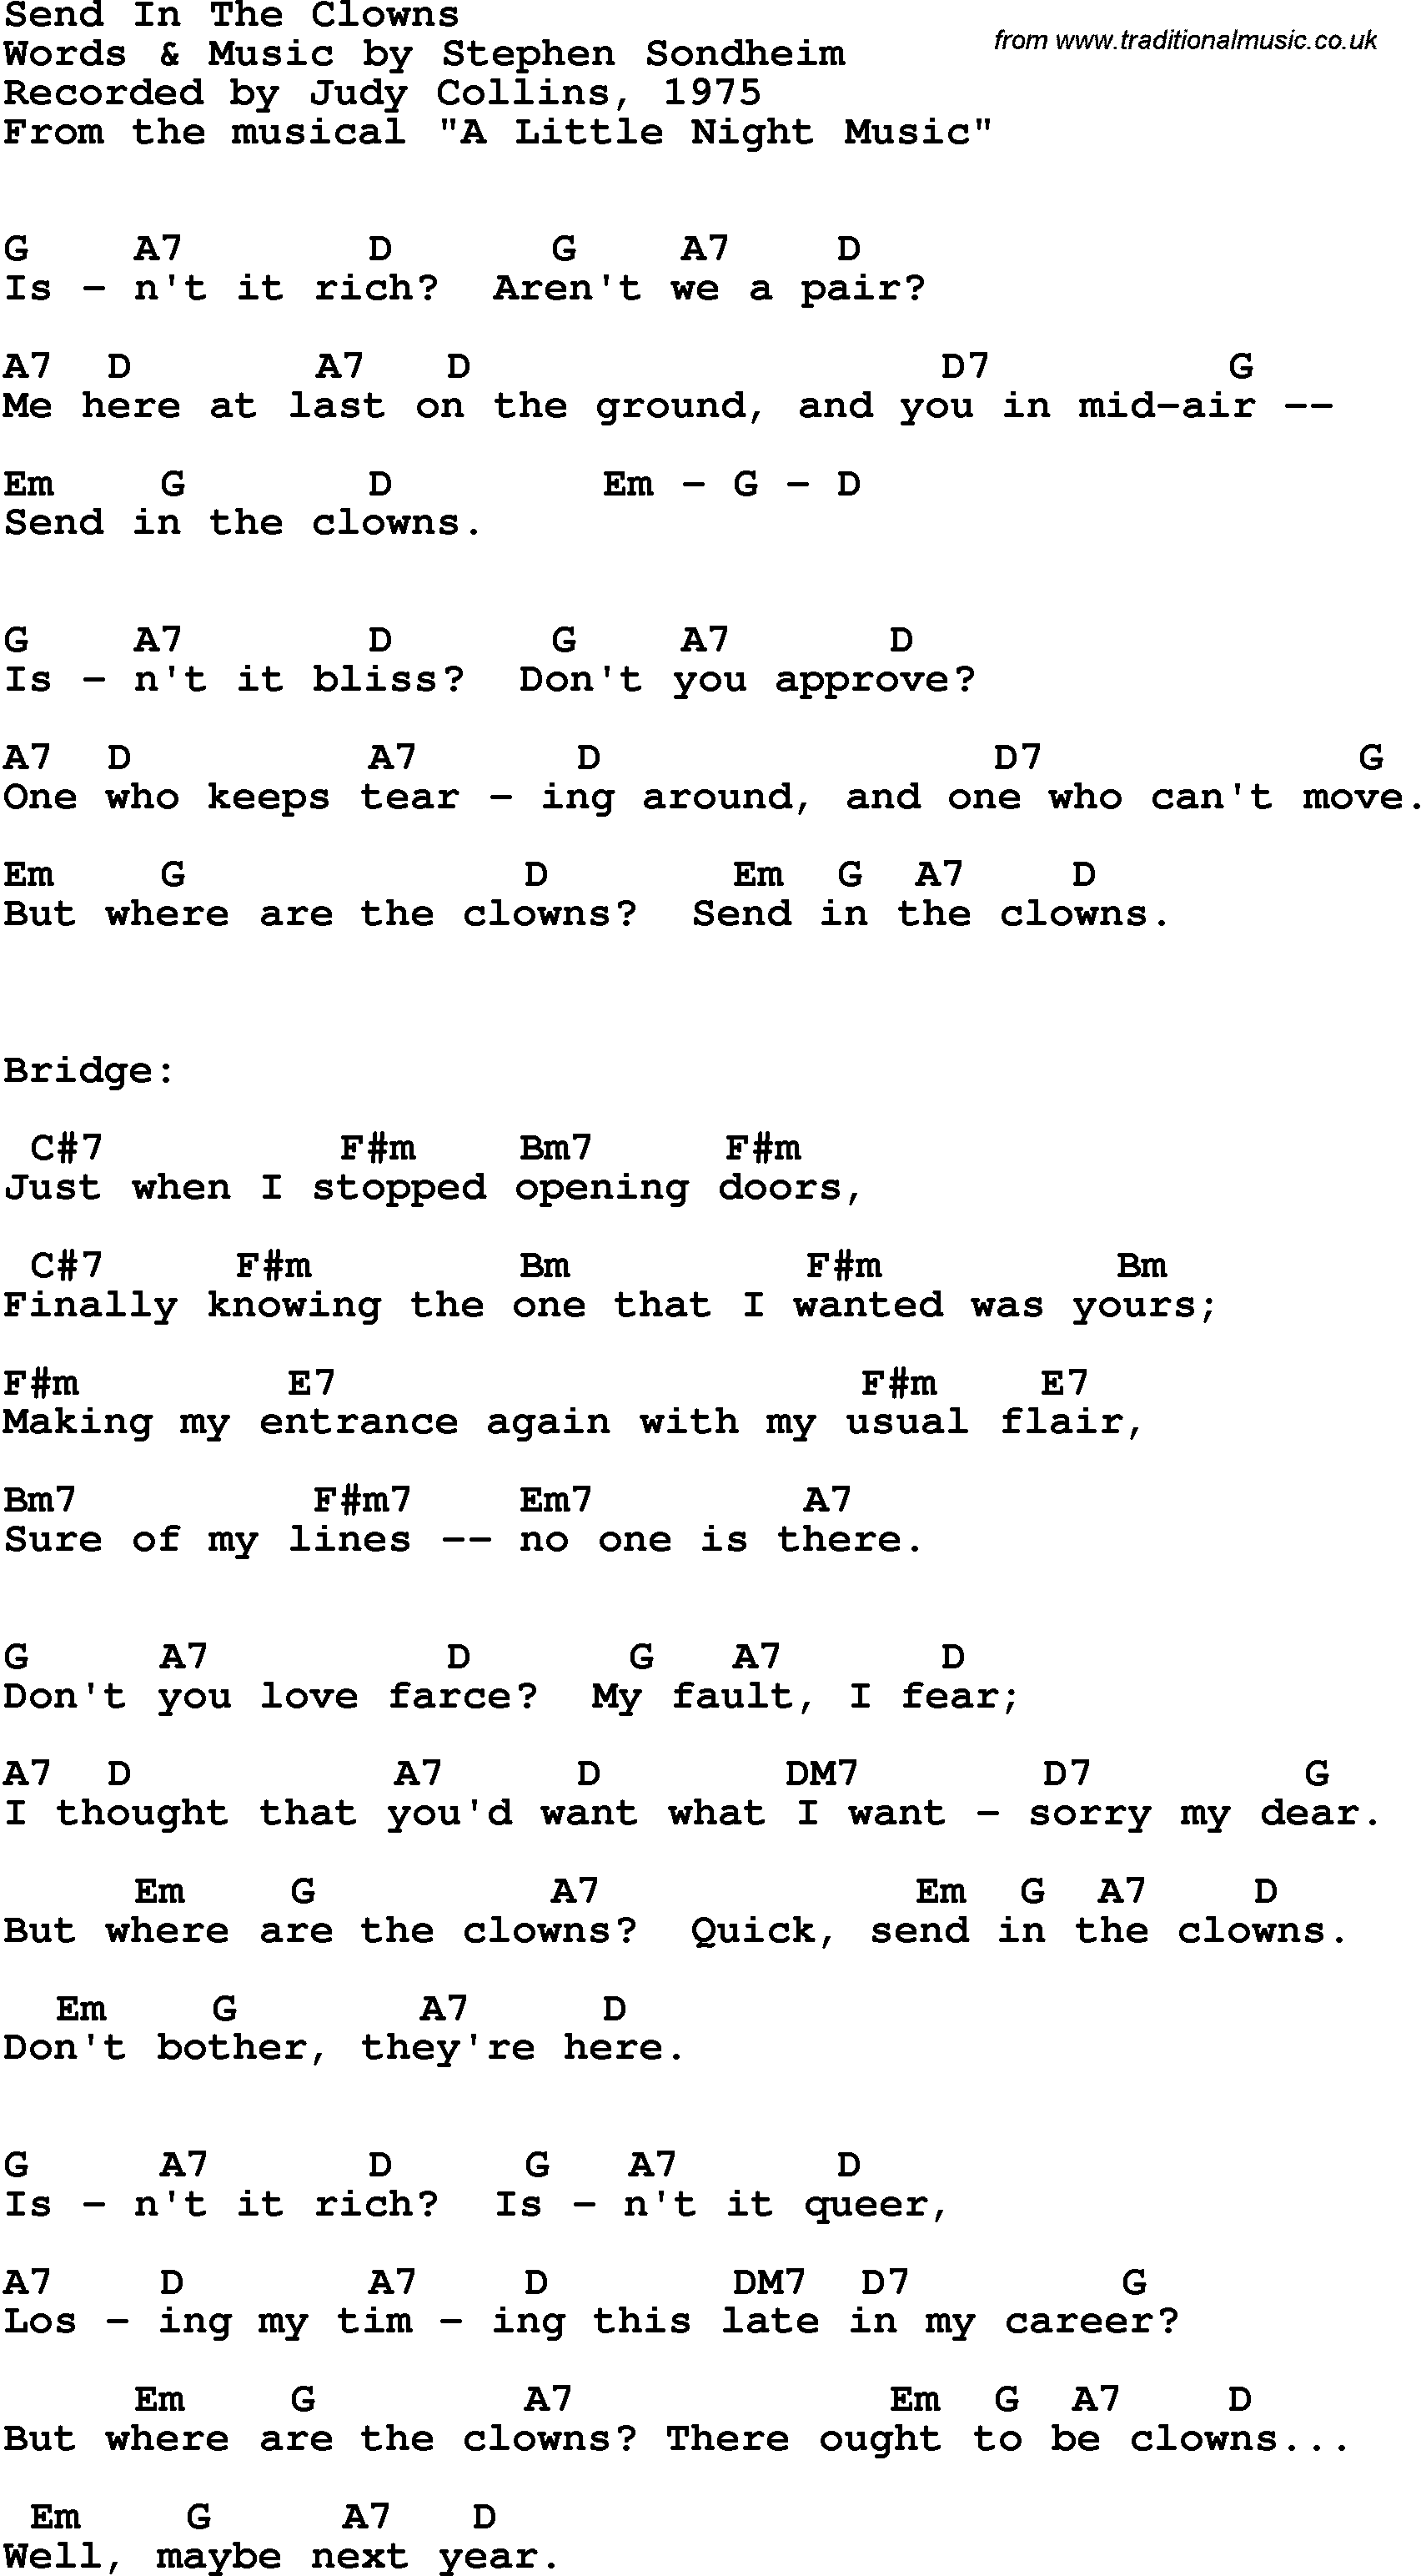 Song Lyrics With Guitar Chords For Send In The Clowns